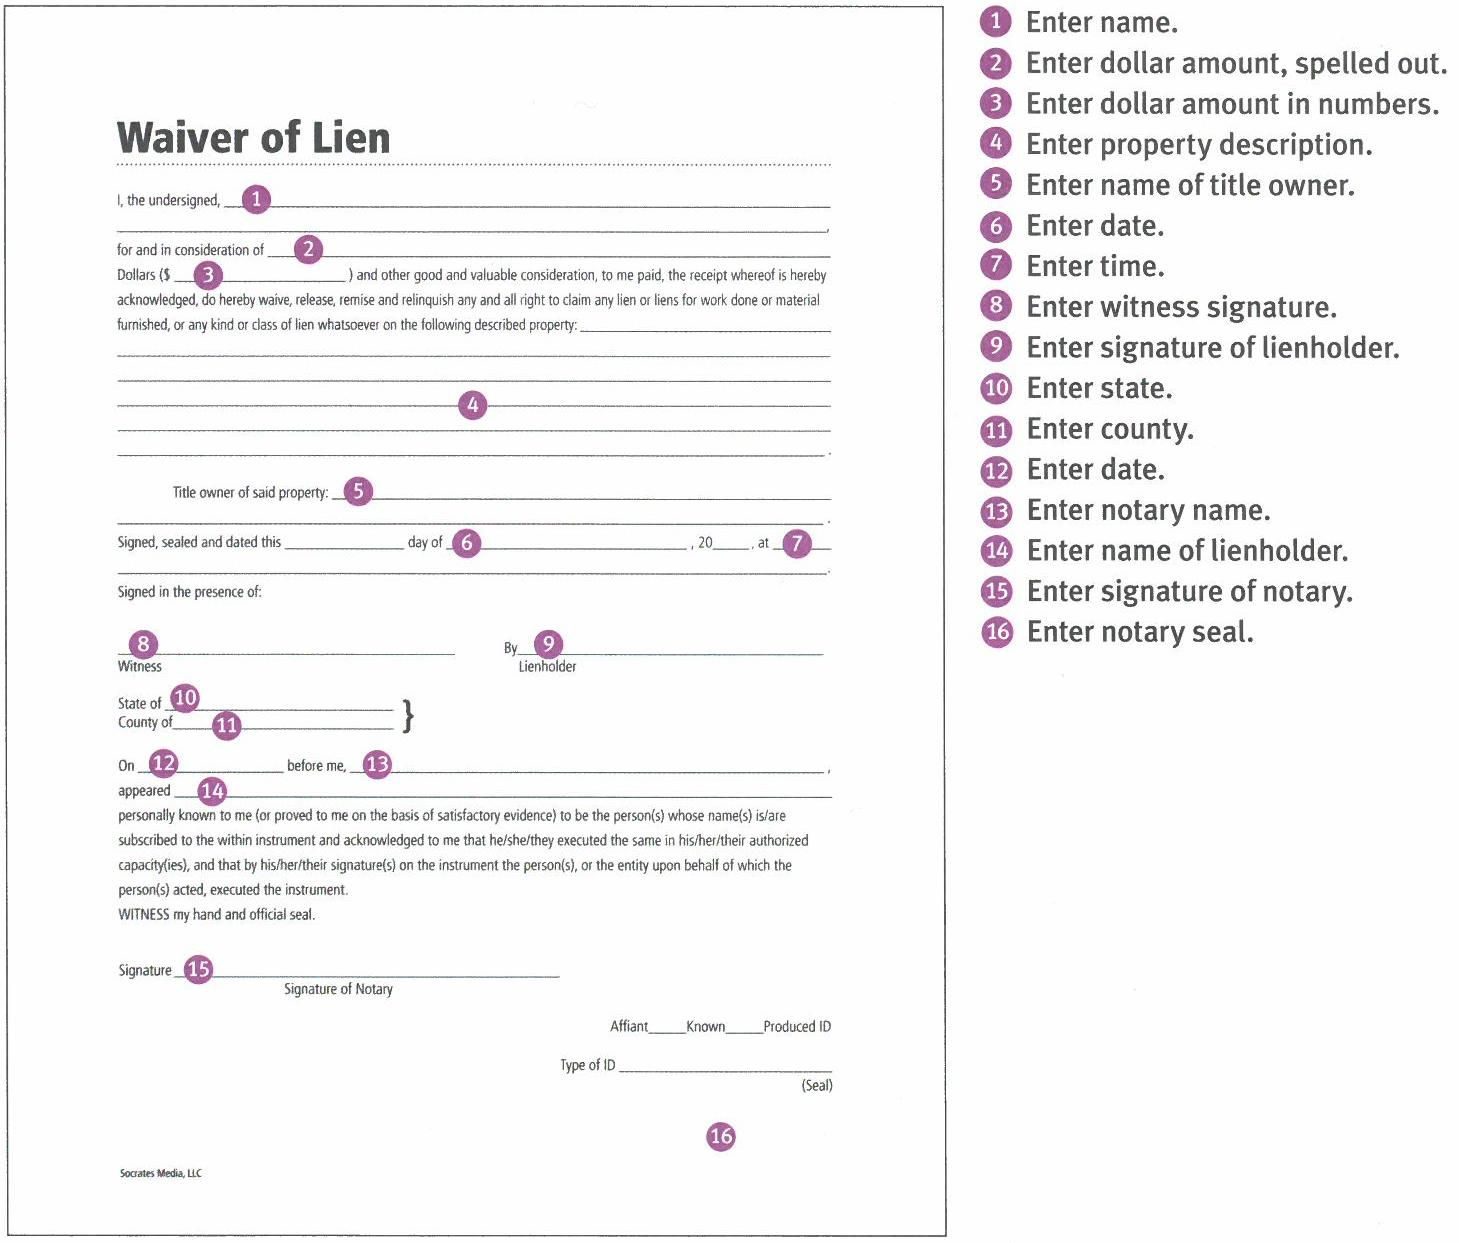 Waiver Of Lien  StepByStep Instructions Easy To User  Complete